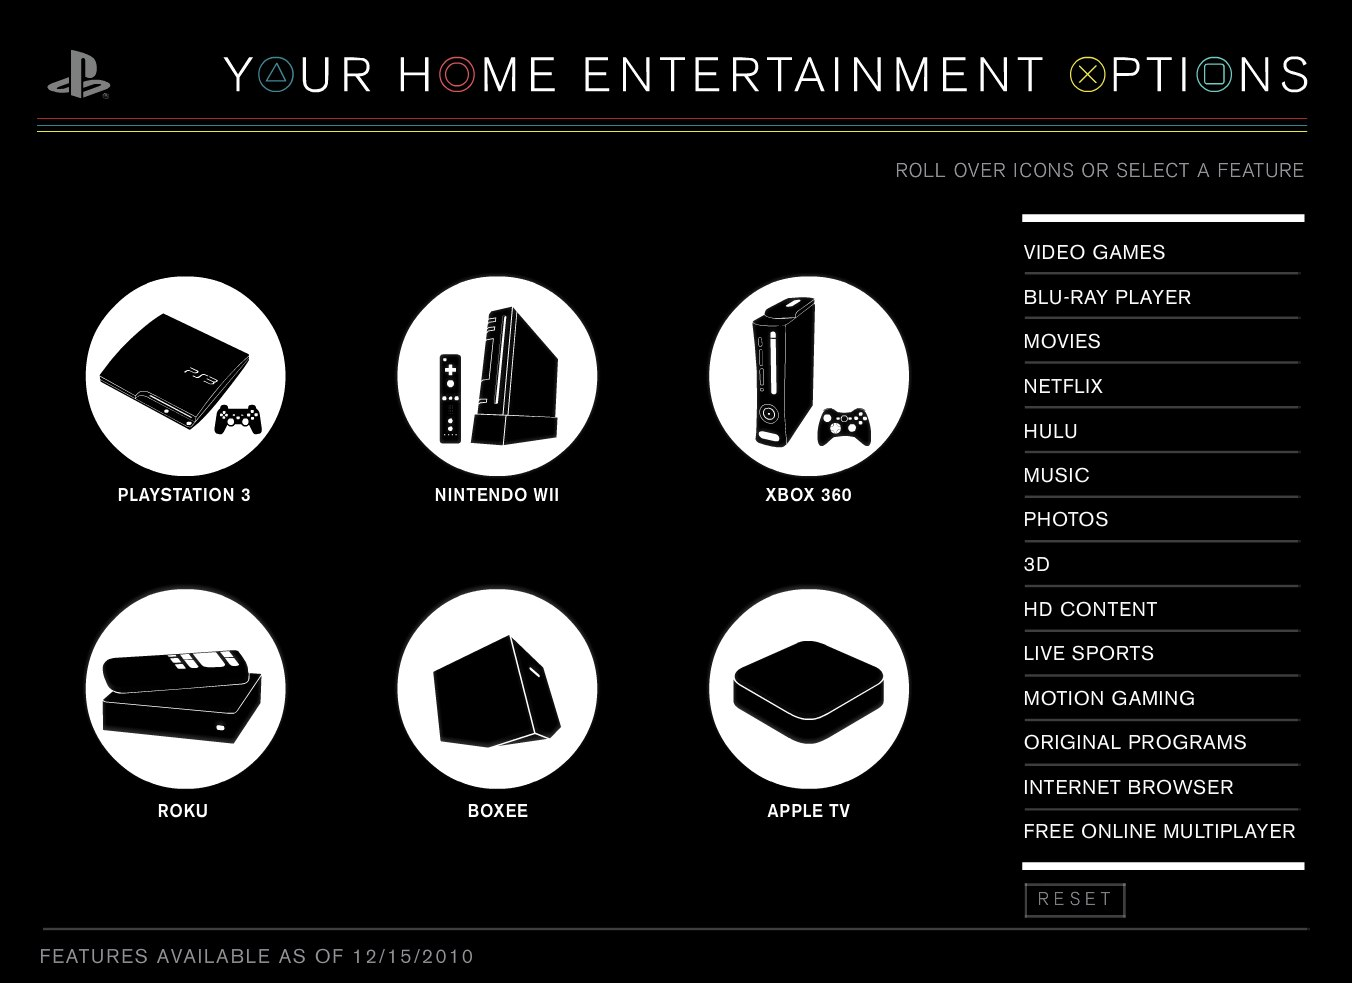 Sony's infographic showing why the PlayStation 3 reigns supreme, in its opinion.